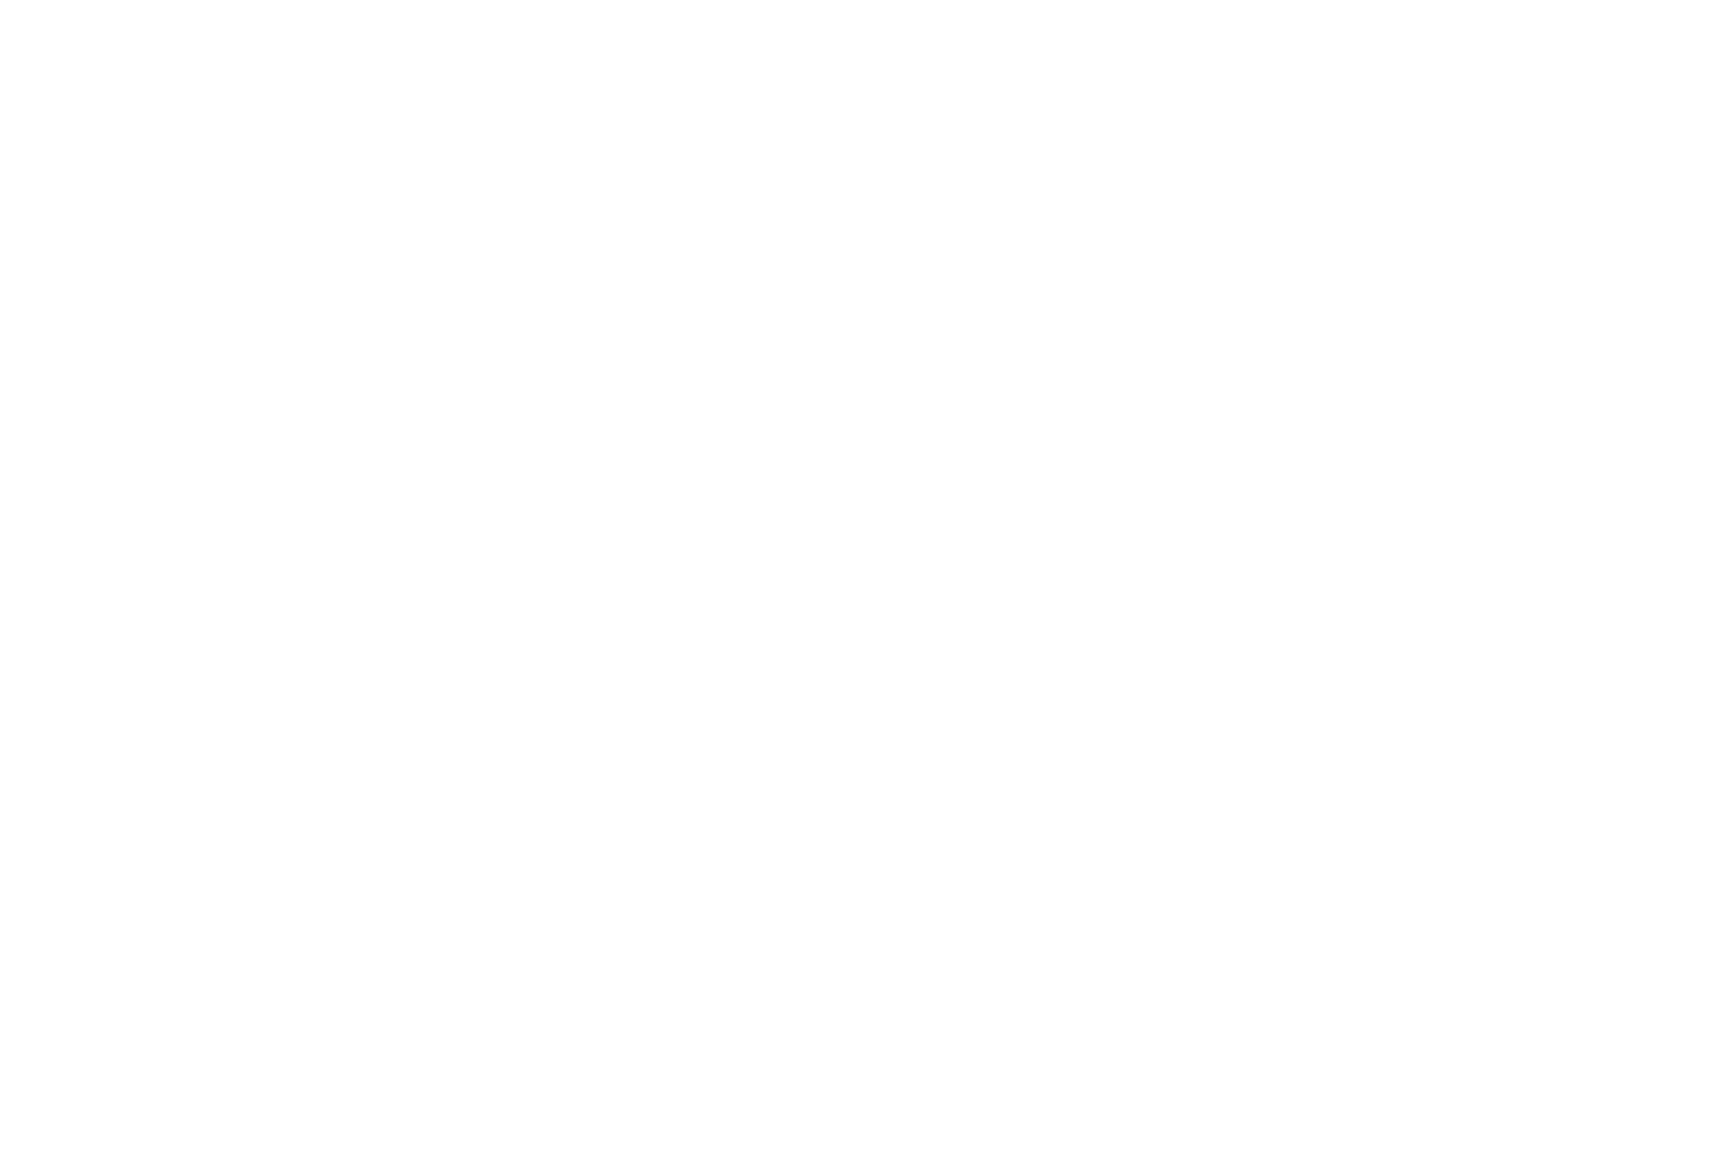 OFFICIAL SELECTION - White Lights City Film Festival - 2017 (1).png